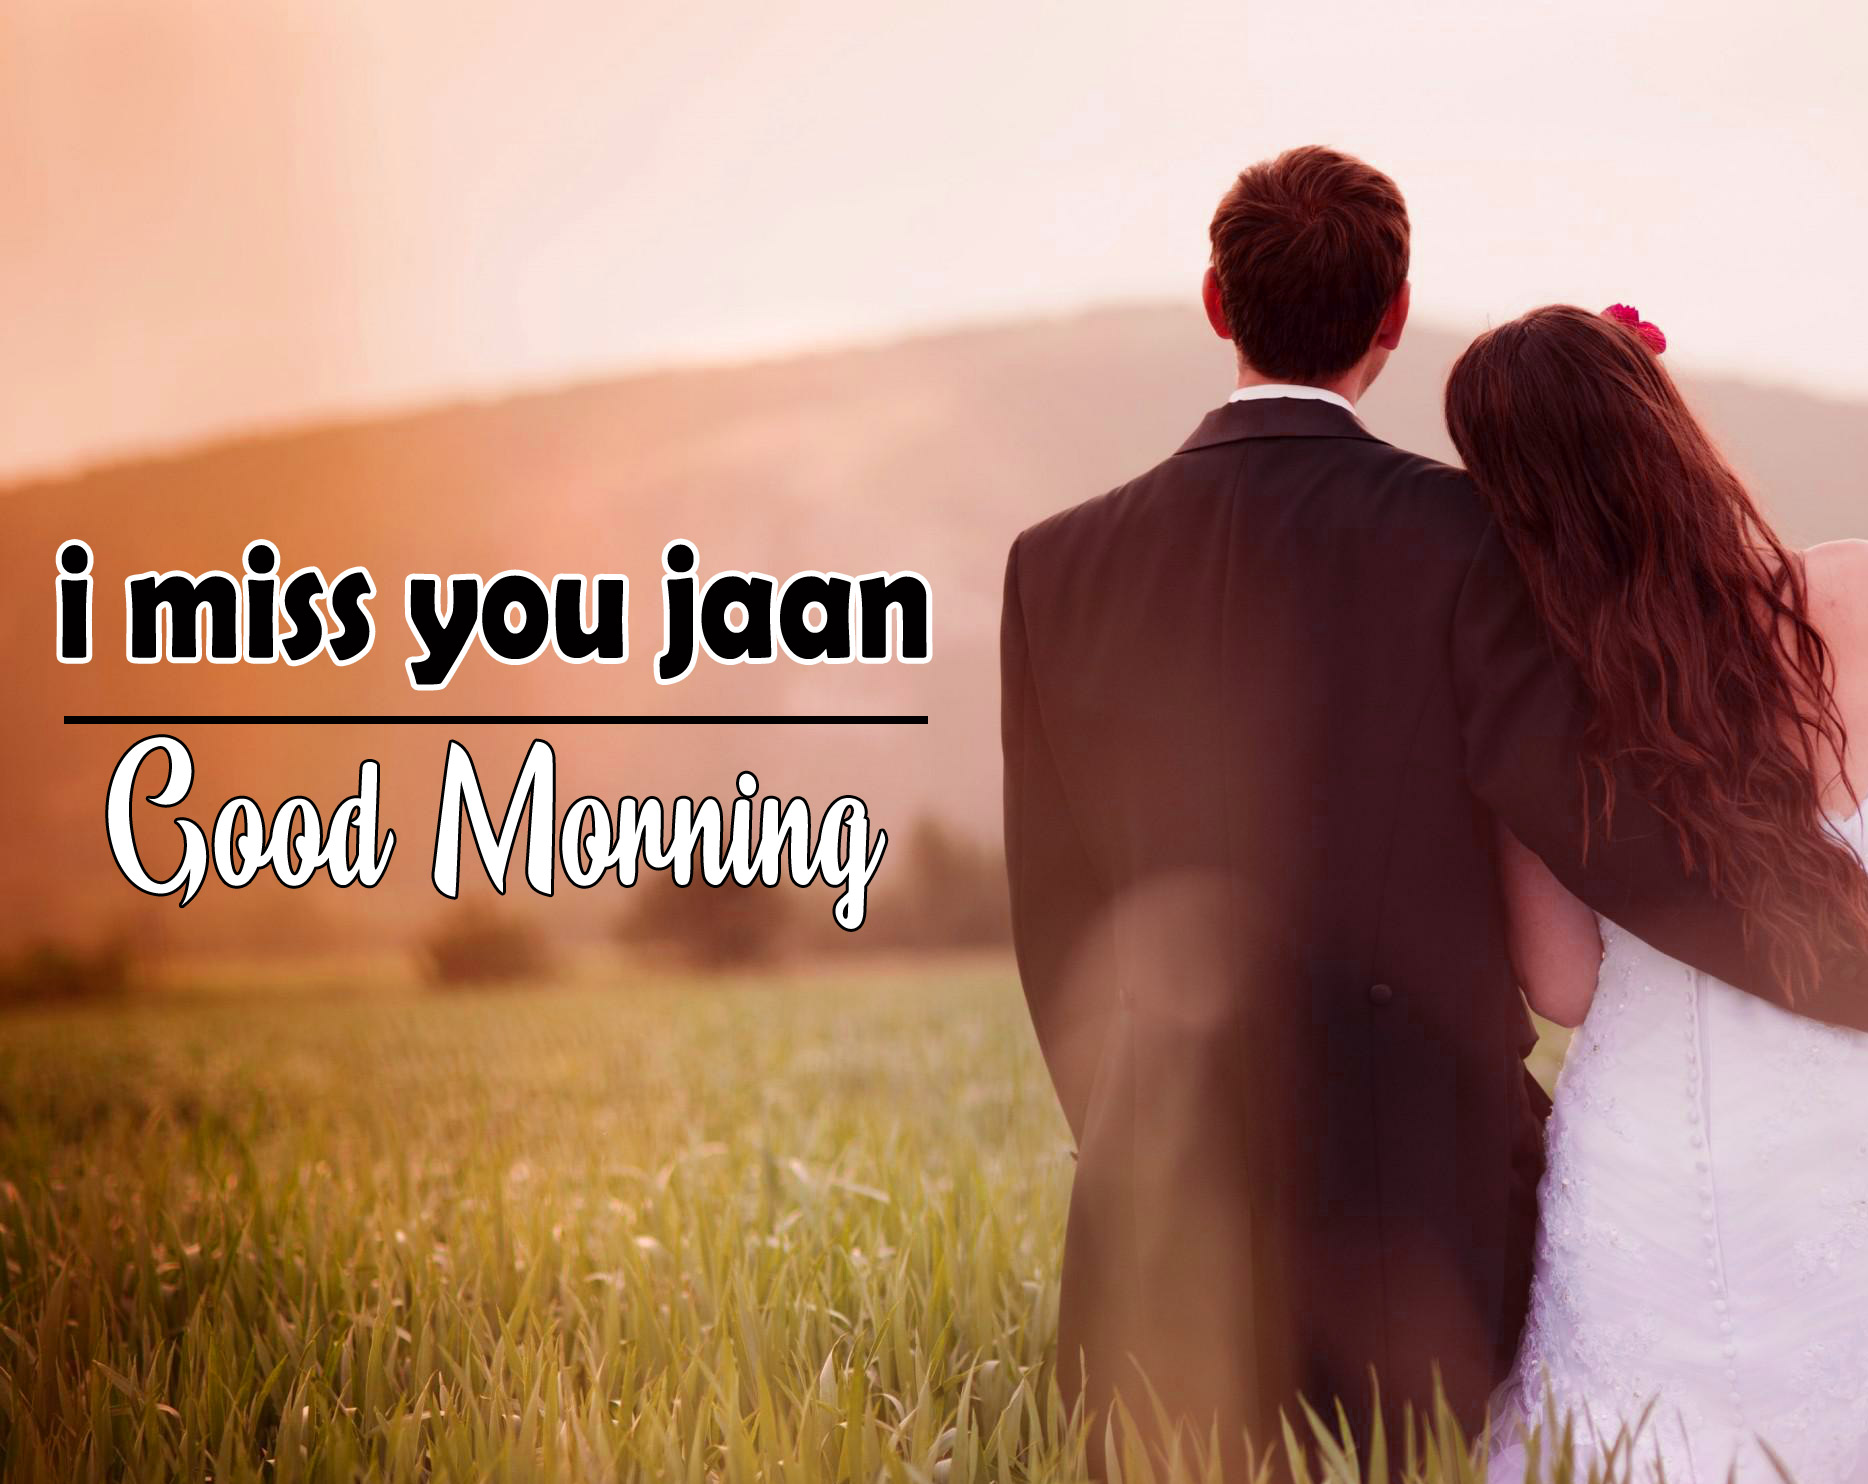 253 Romantic Good Morning Images For Boyfriend Hd Download Good Morning Images Good Morning Photo Hd Downlaod Good Morning Pics Wallpaper Hd